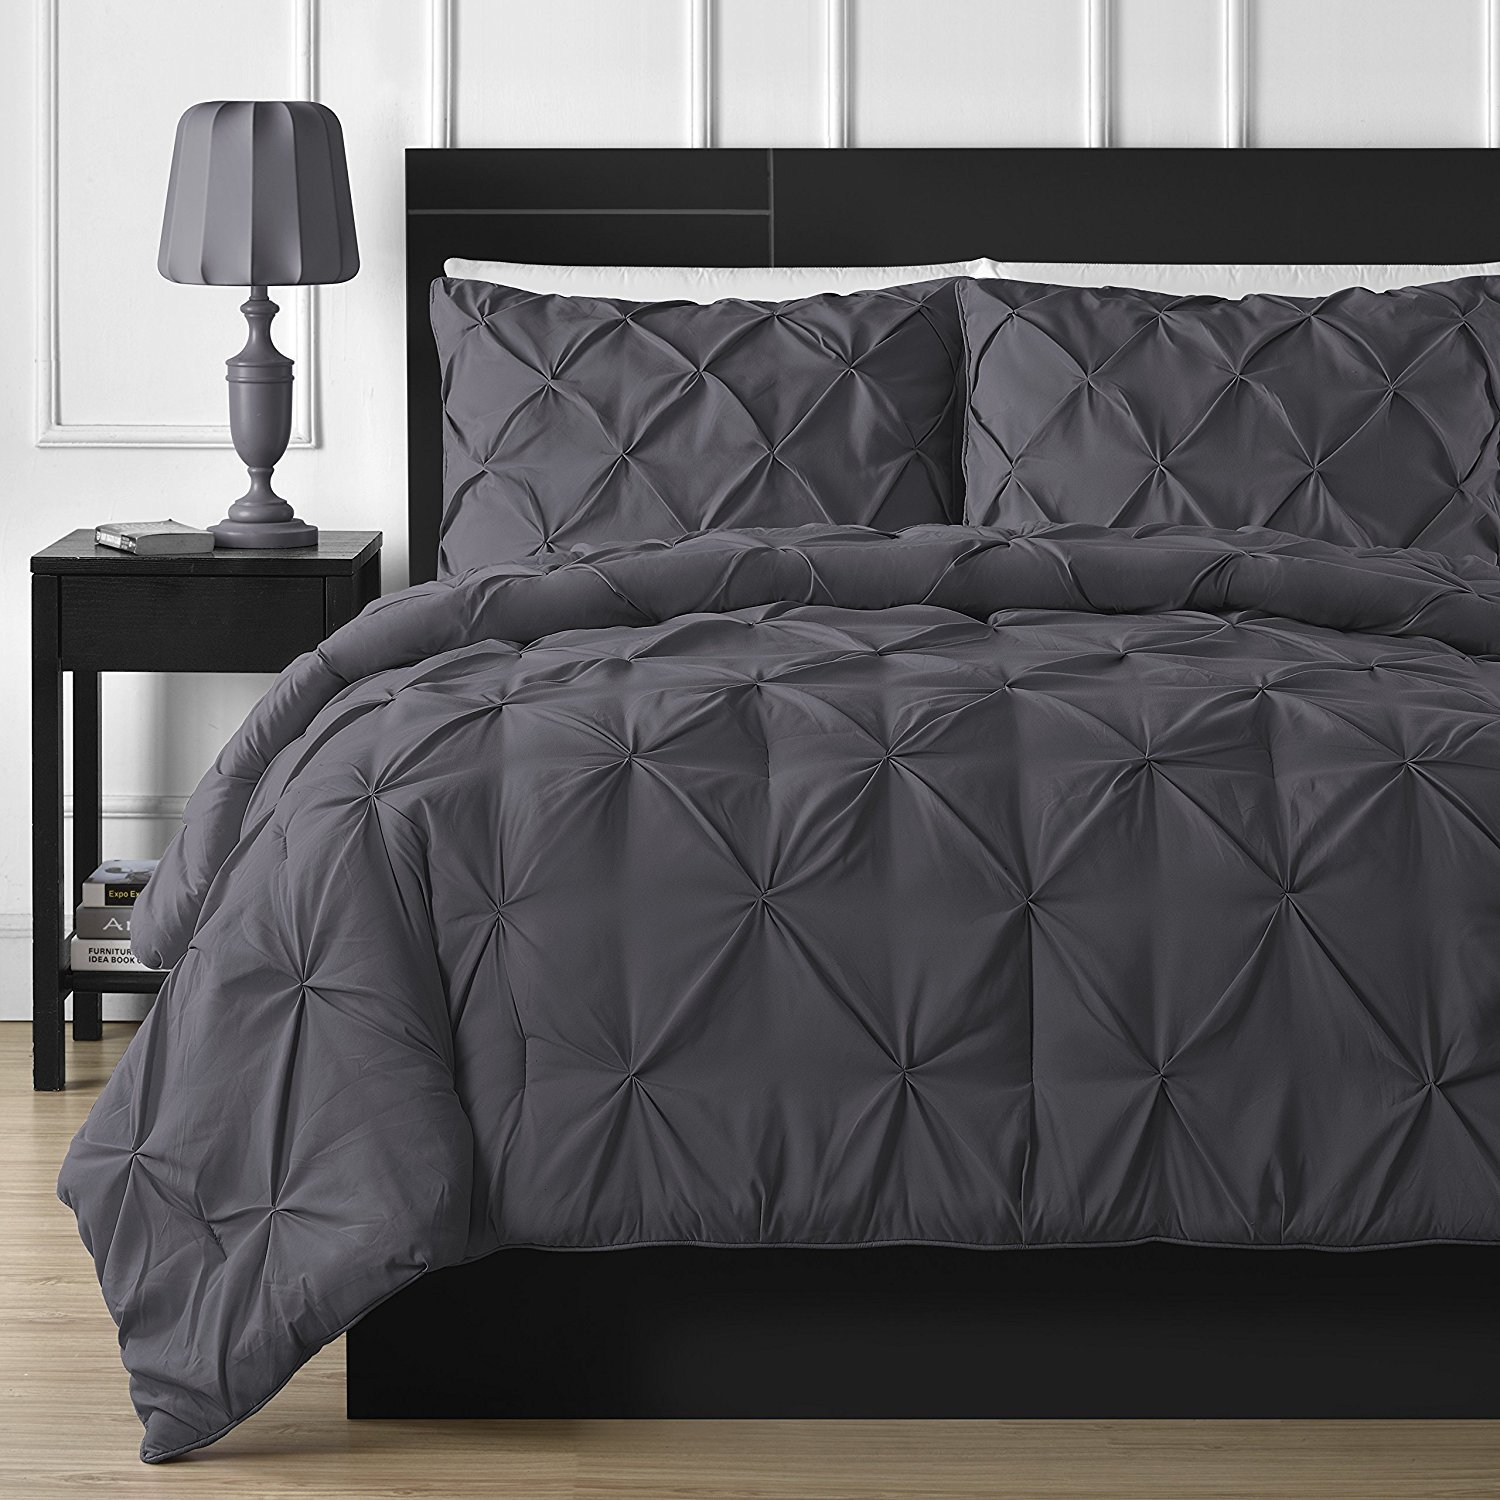 FINE LECHO Soft Luxurious 3-Piece Pinch Pleated Pintuck Decorative Quilt Duvet Cover Set Highest Quality Egyptian Cotton 800 Thread Count Comforter Cover (Twin/Twin XL, Elephant Grey